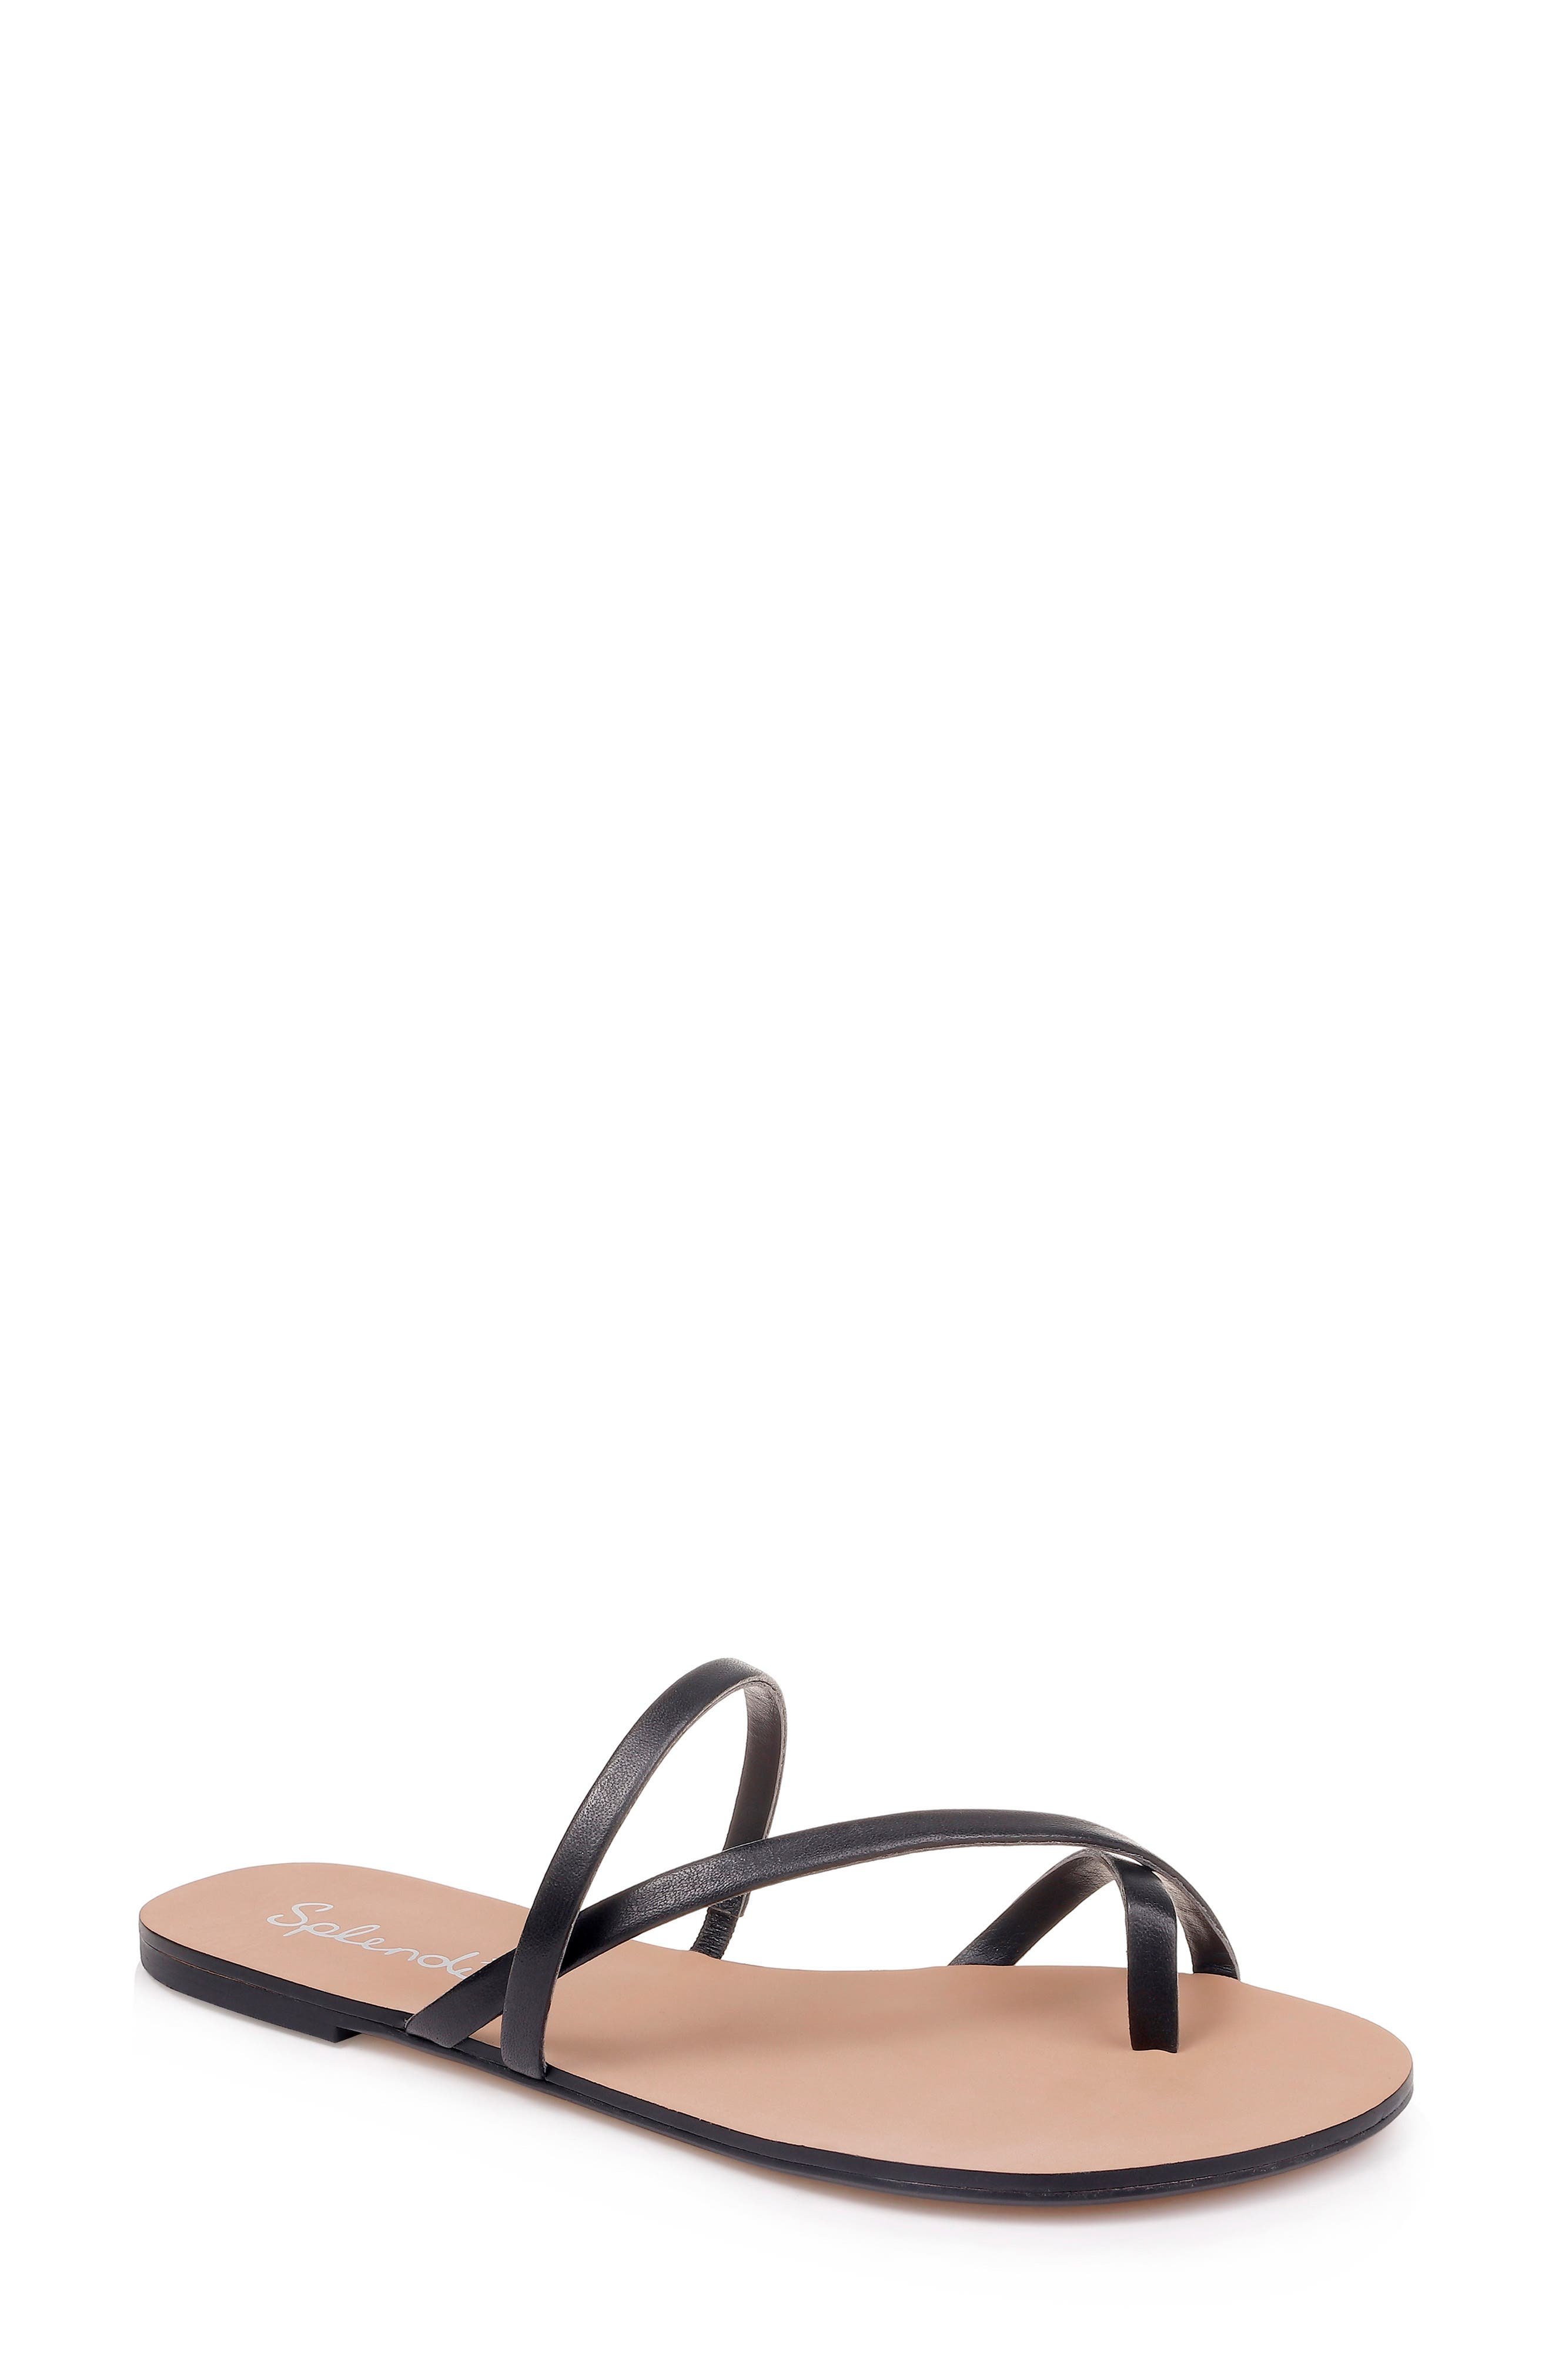 SPLENDID, Trenton Strappy Slide Sandal, Main thumbnail 1, color, BLACK LEATHER